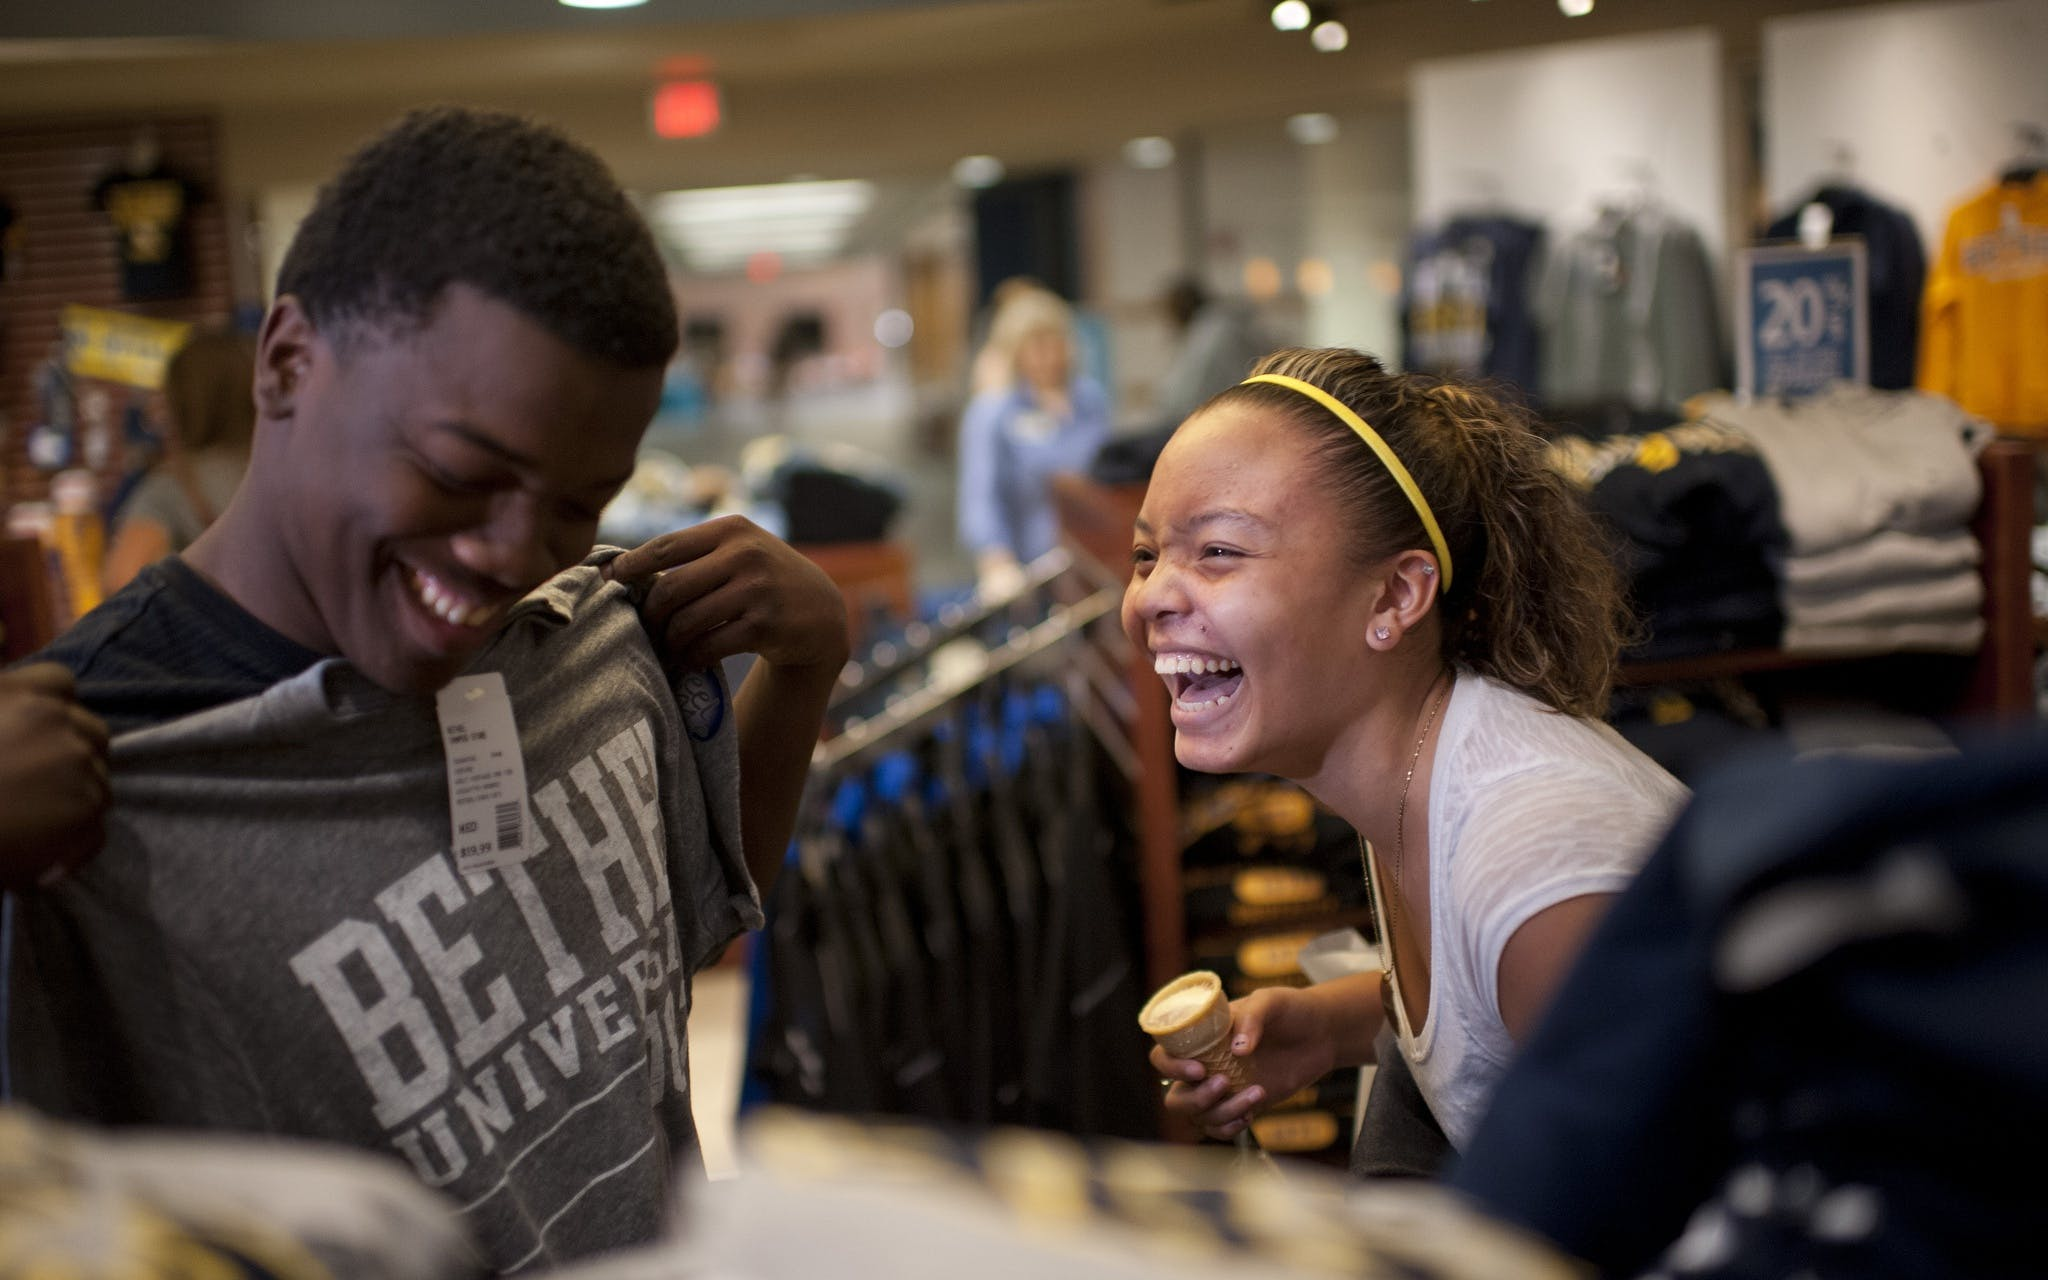 Students shopping in the campus store